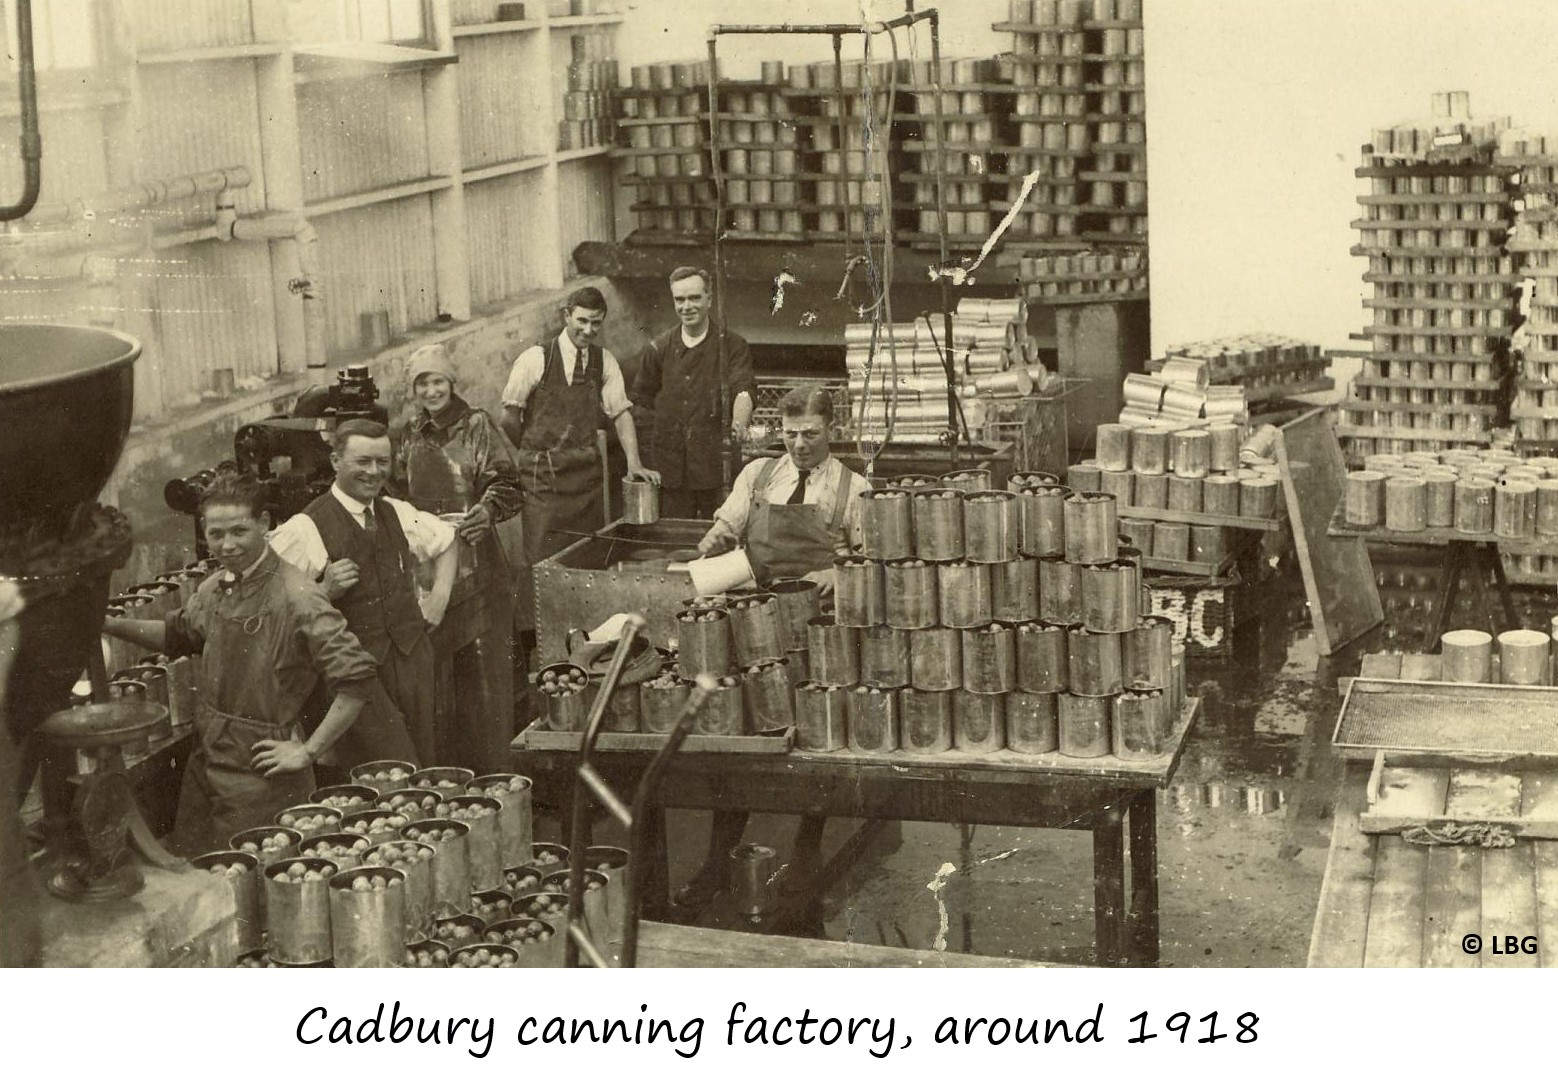 Cadbury canning factory - labelled